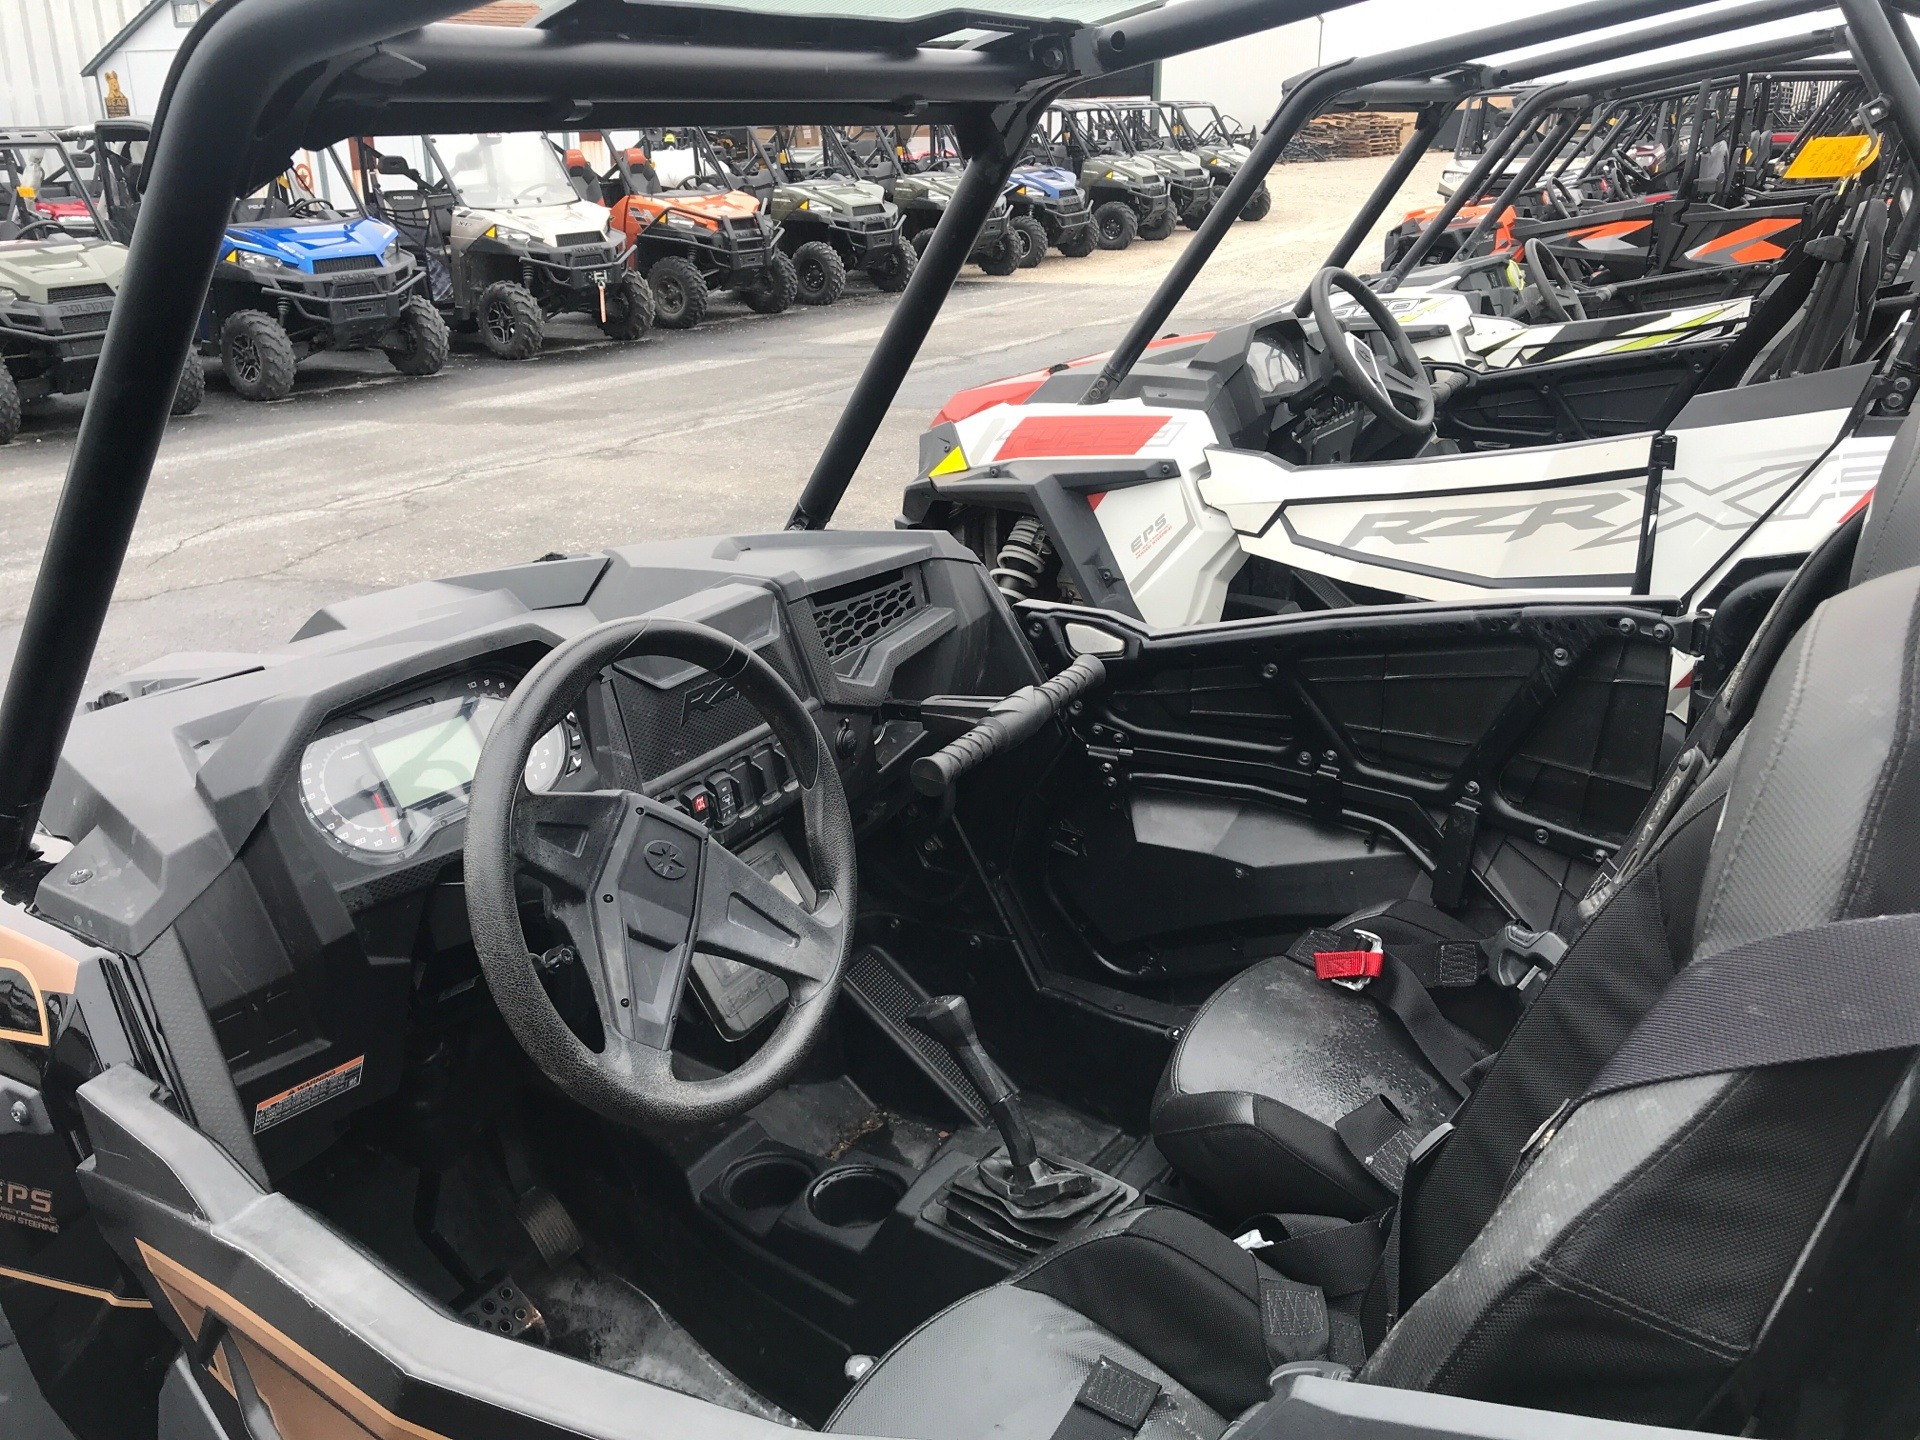 2019 Polaris RZR XP 1000 Trails & Rocks in Bolivar, Missouri - Photo 3